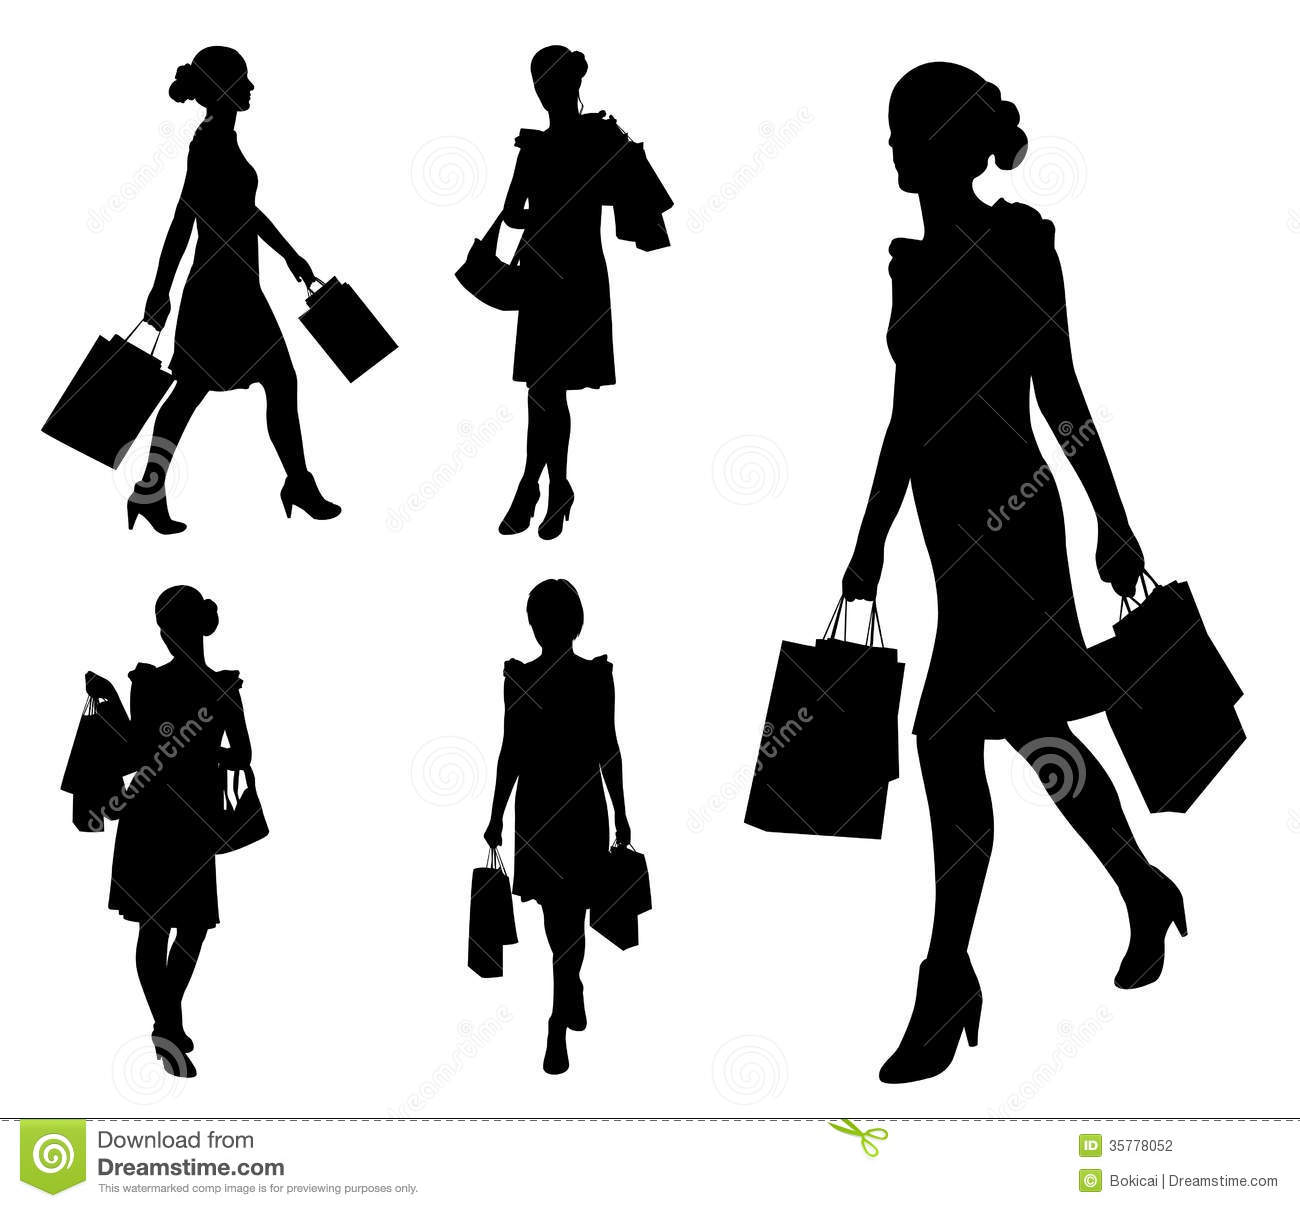 679f124635f Women with shopping bags stock vector. Illustration of lifestyle ...